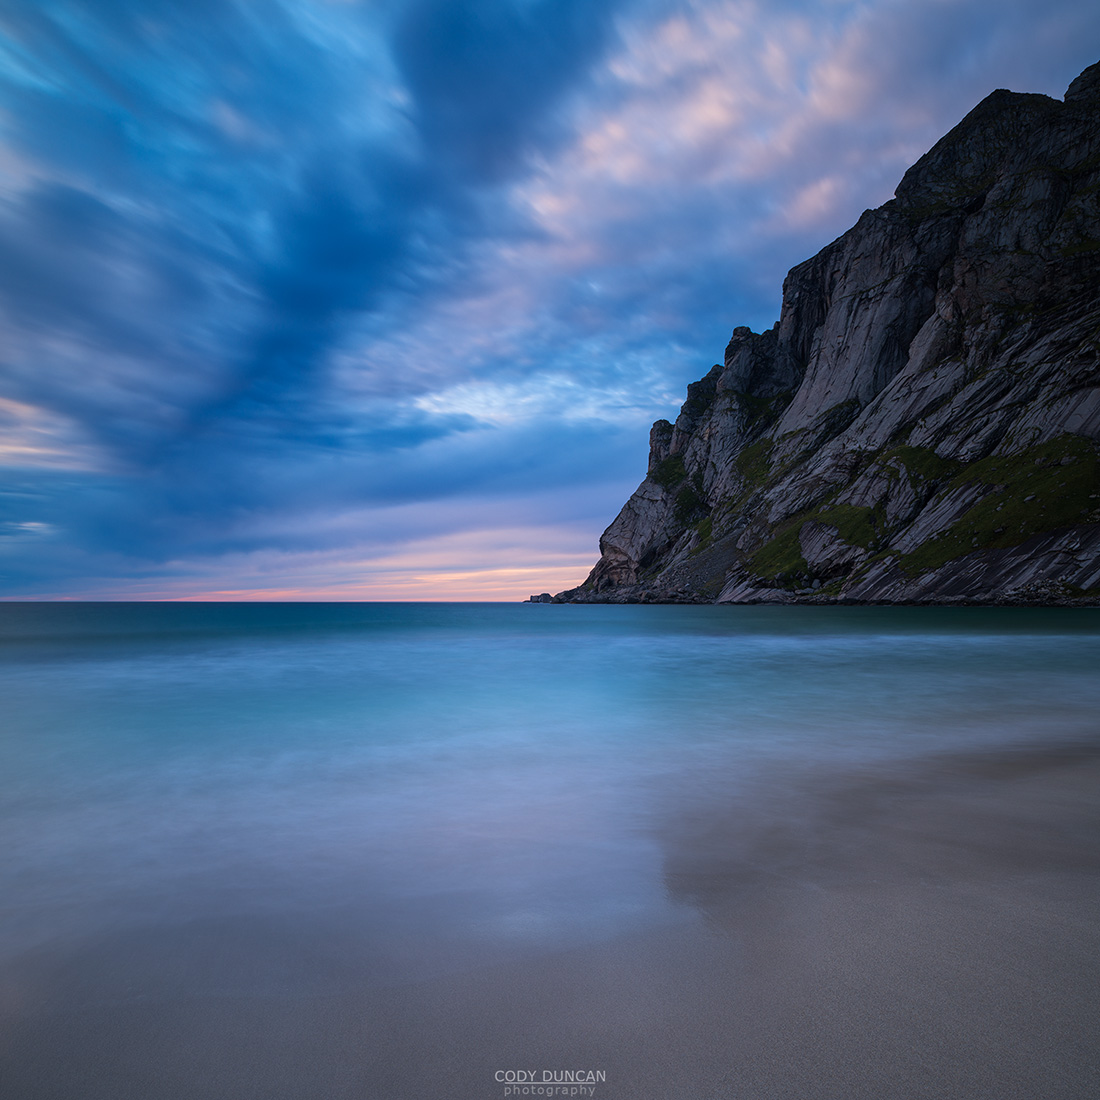 Sunset at Bunes Beach, Moskenesoy, Lofoten Islands, Norway